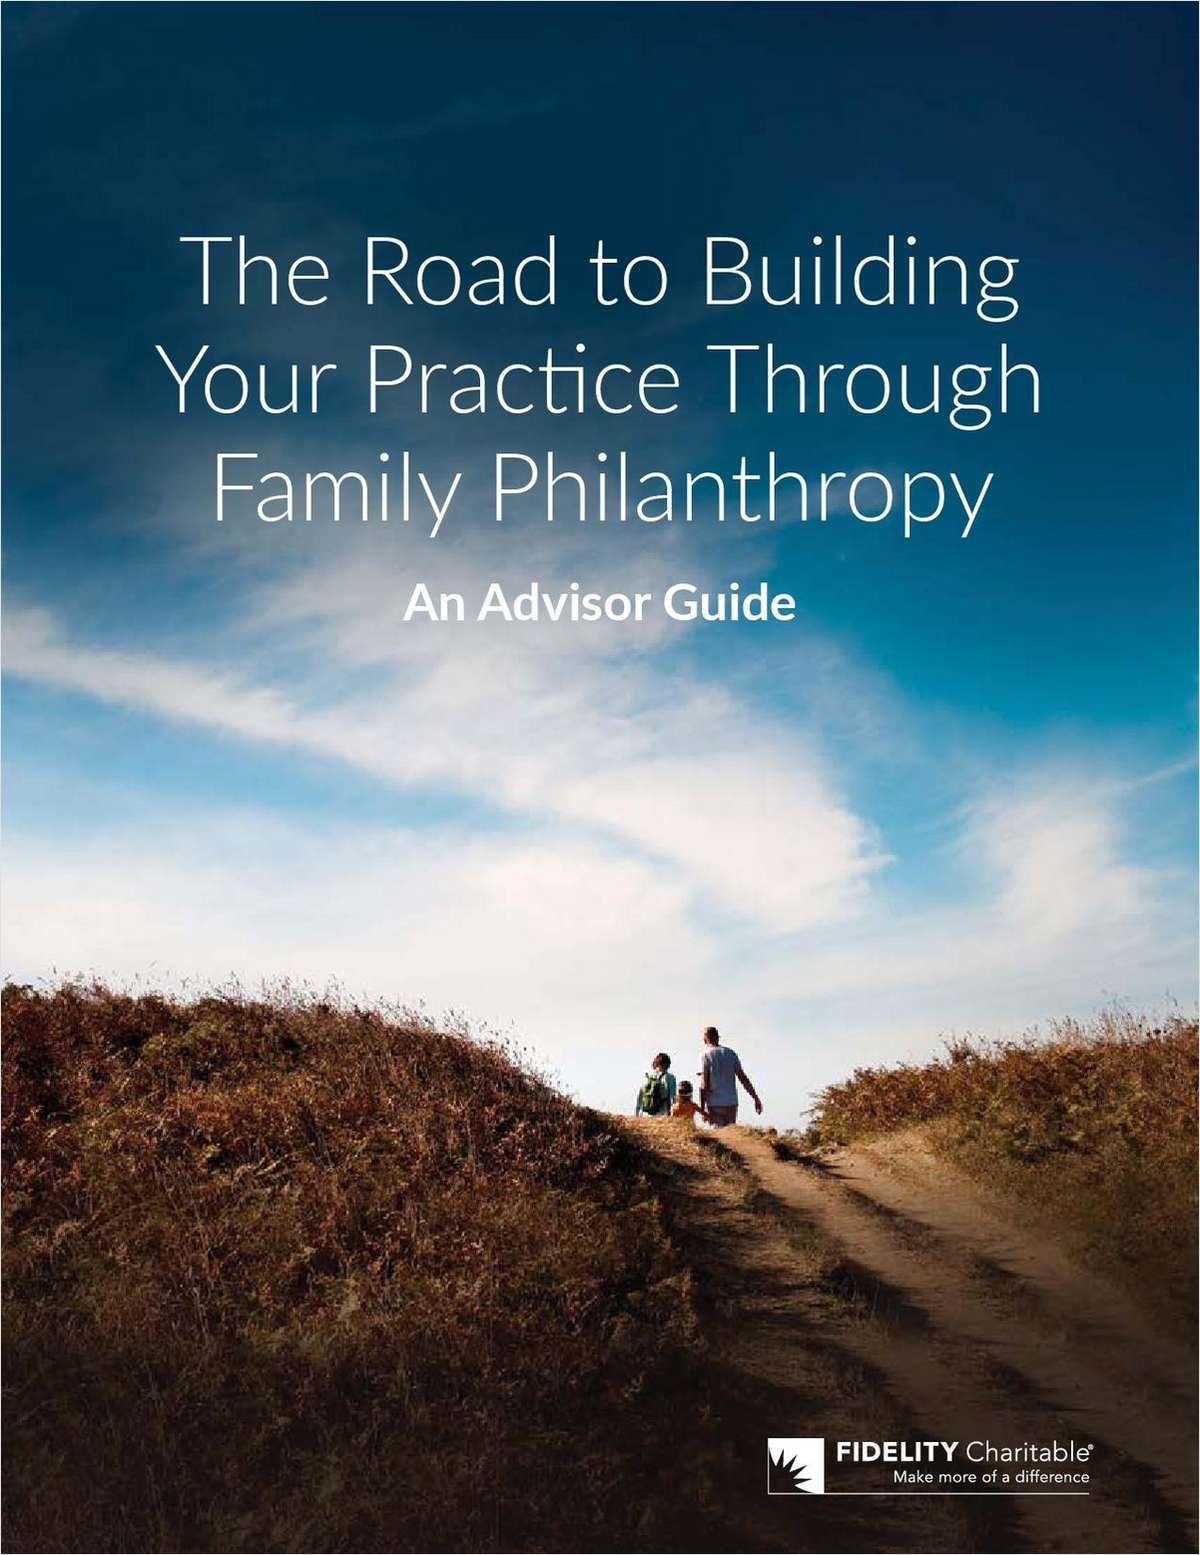 The Road to Building Your Practice Through Family Philanthropy